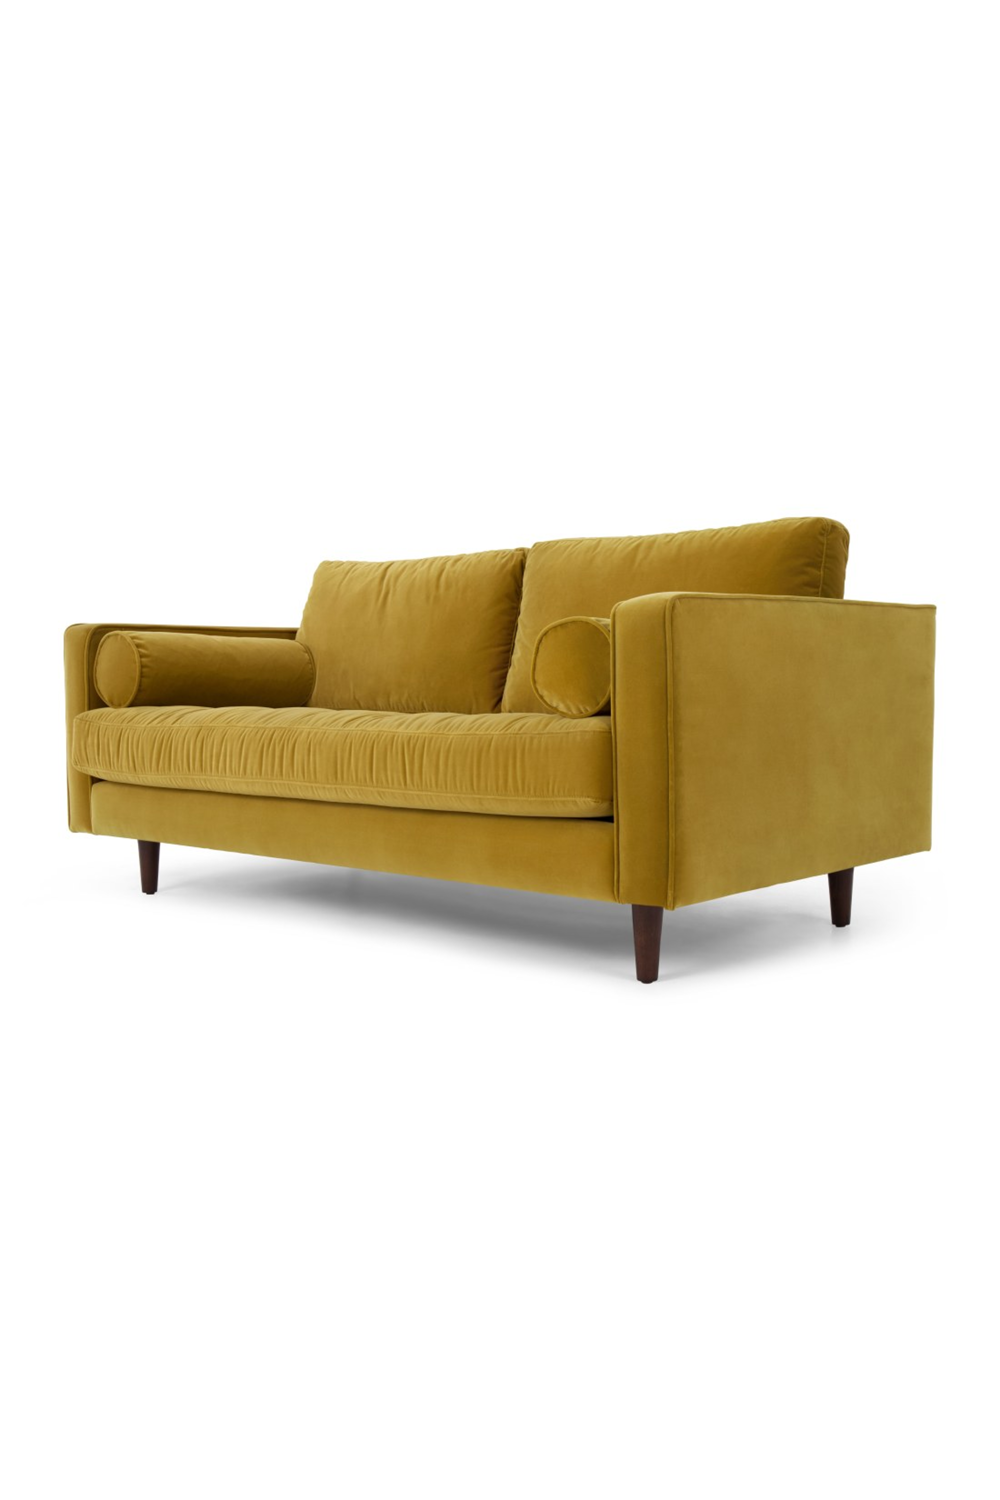 Scott 2 Sitzer Sofa Samt In Gold Sofa Home Decor Love Seat